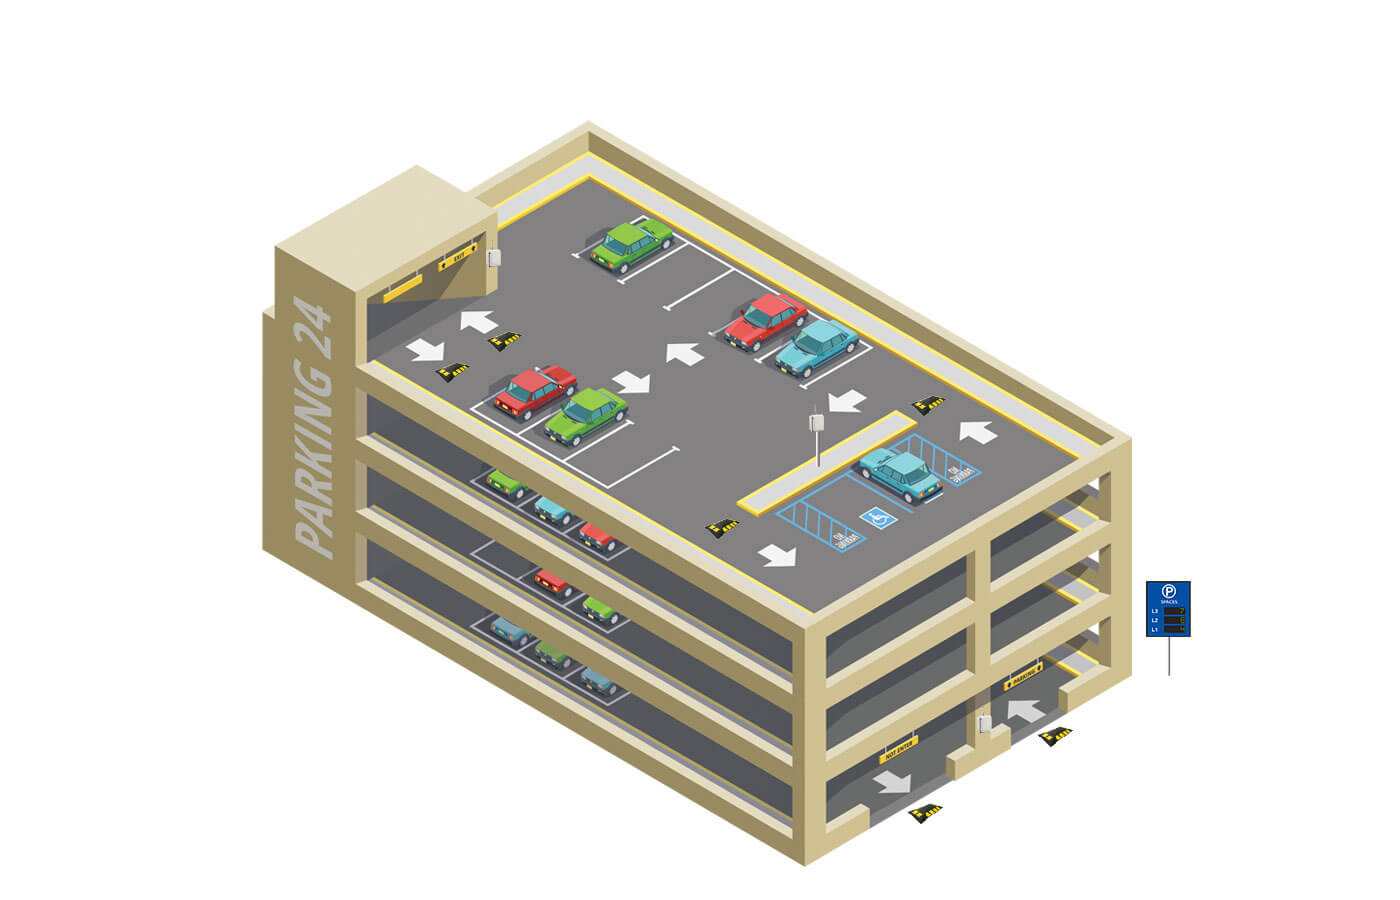 Multi-level parking lot infographic illustration